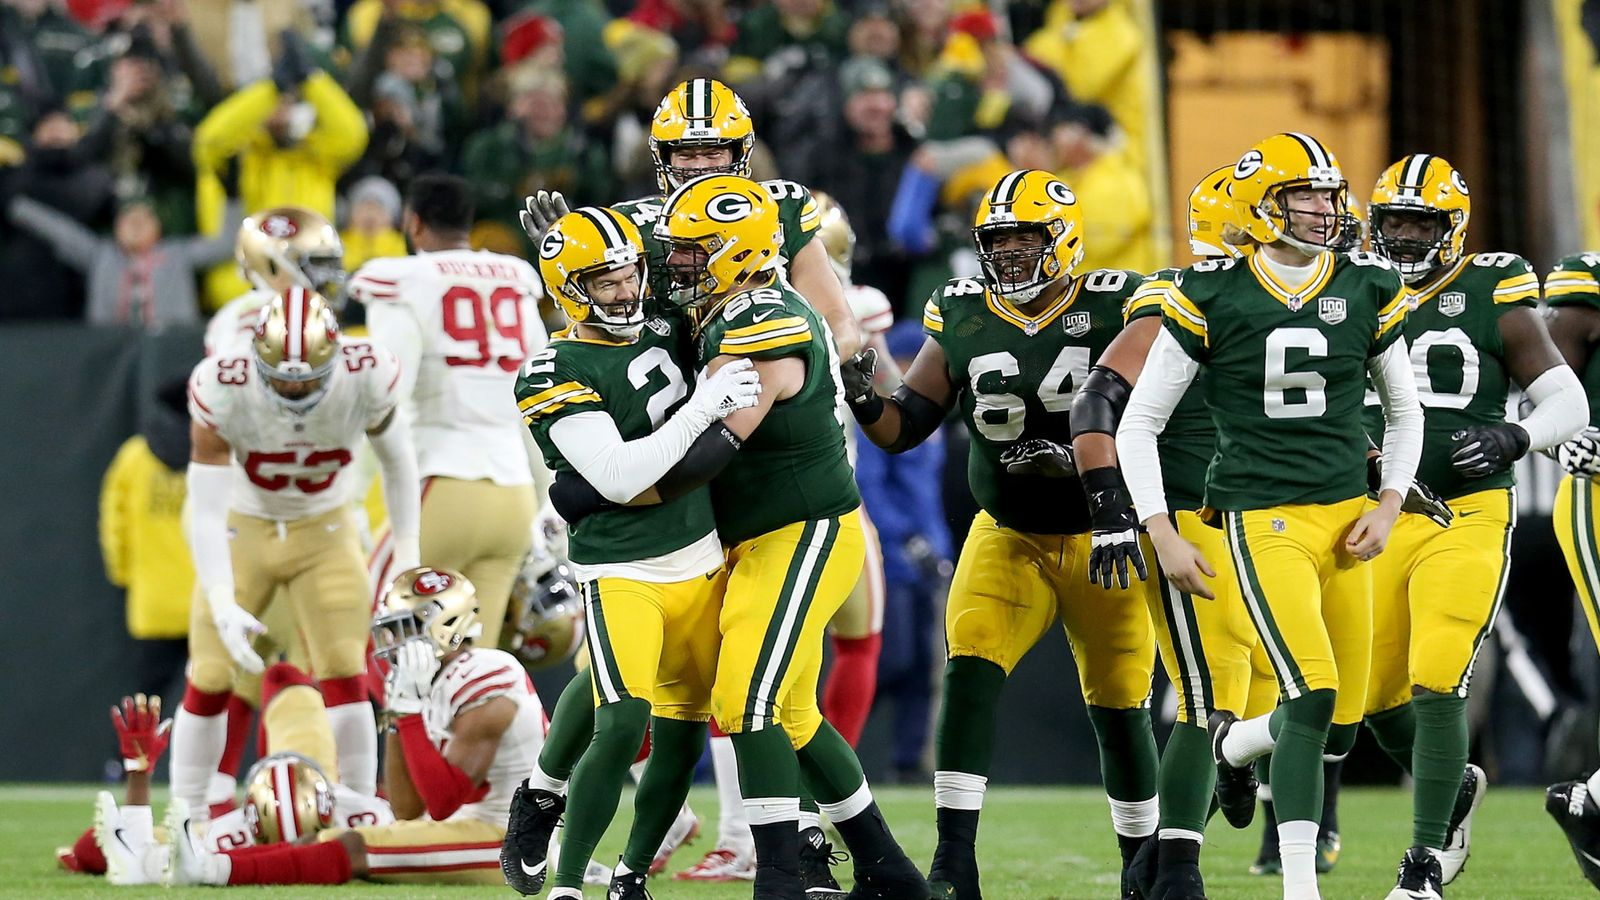 97864a5022e San Francisco 49ers 30-33 Green Bay Packers  Mason Crosby kicks game-winner  as time expires